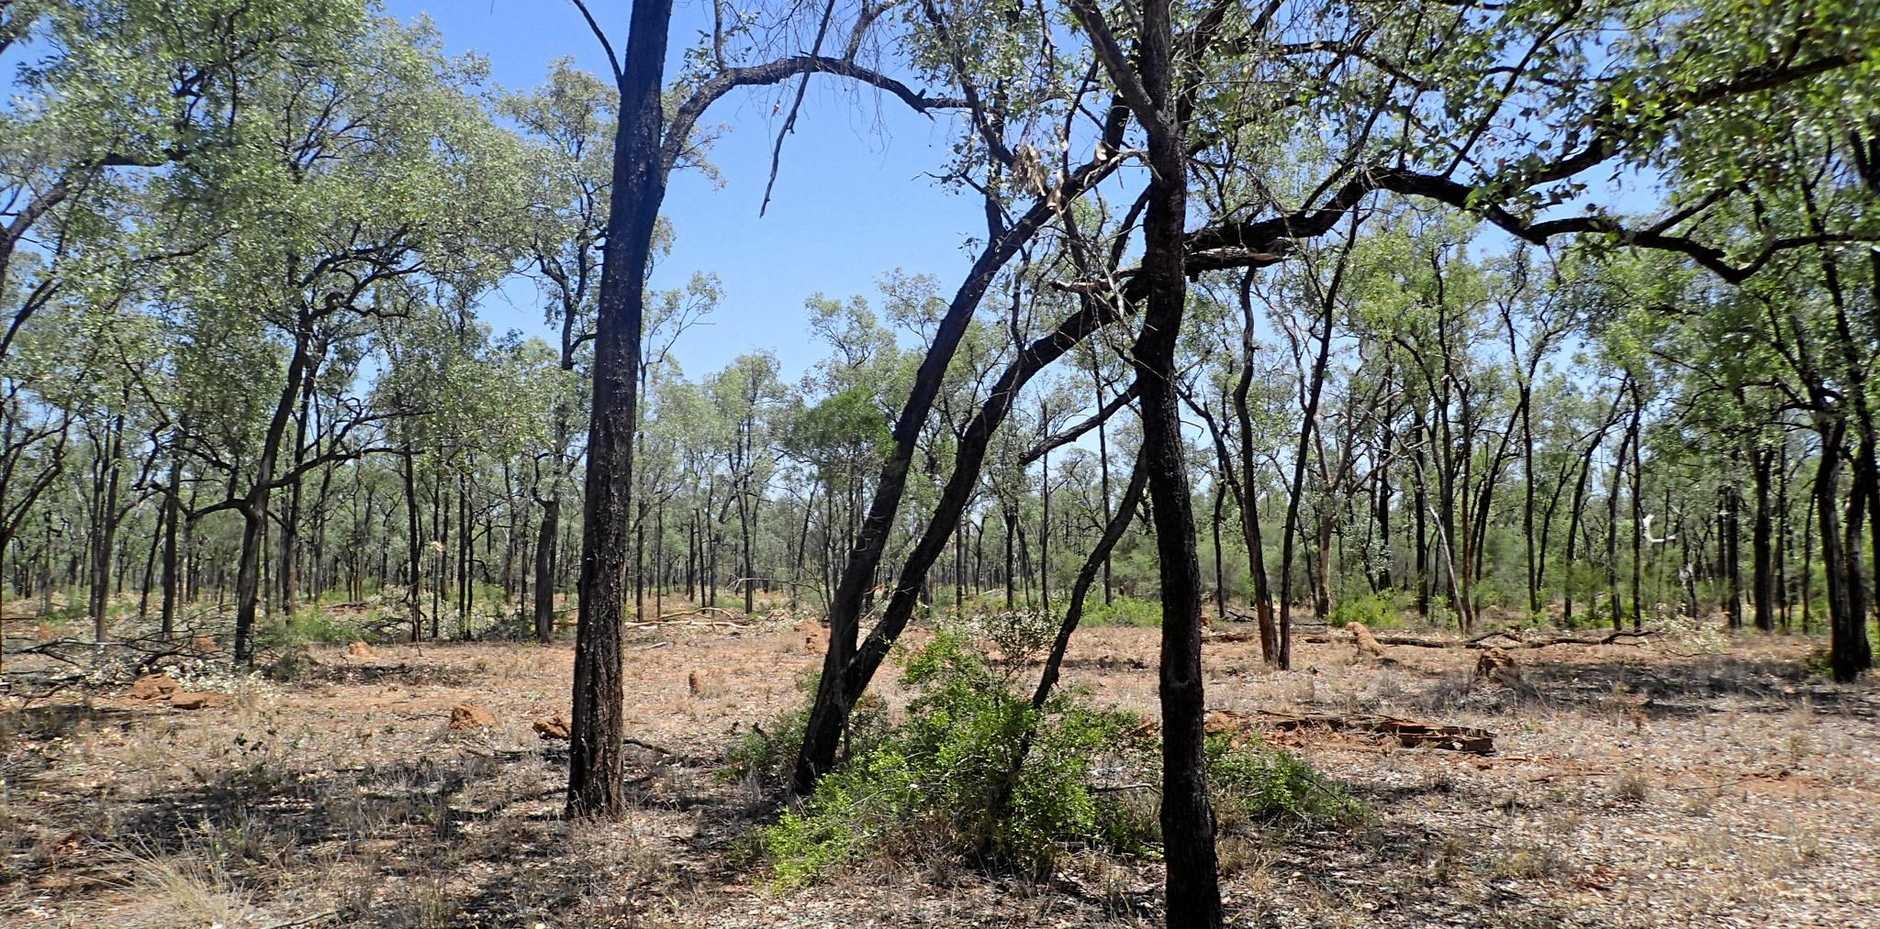 UNAUTHORISED VEGETATION CLEARING: Regulated remnant vegetation which consists of a silver-leaf ironbark woodland.